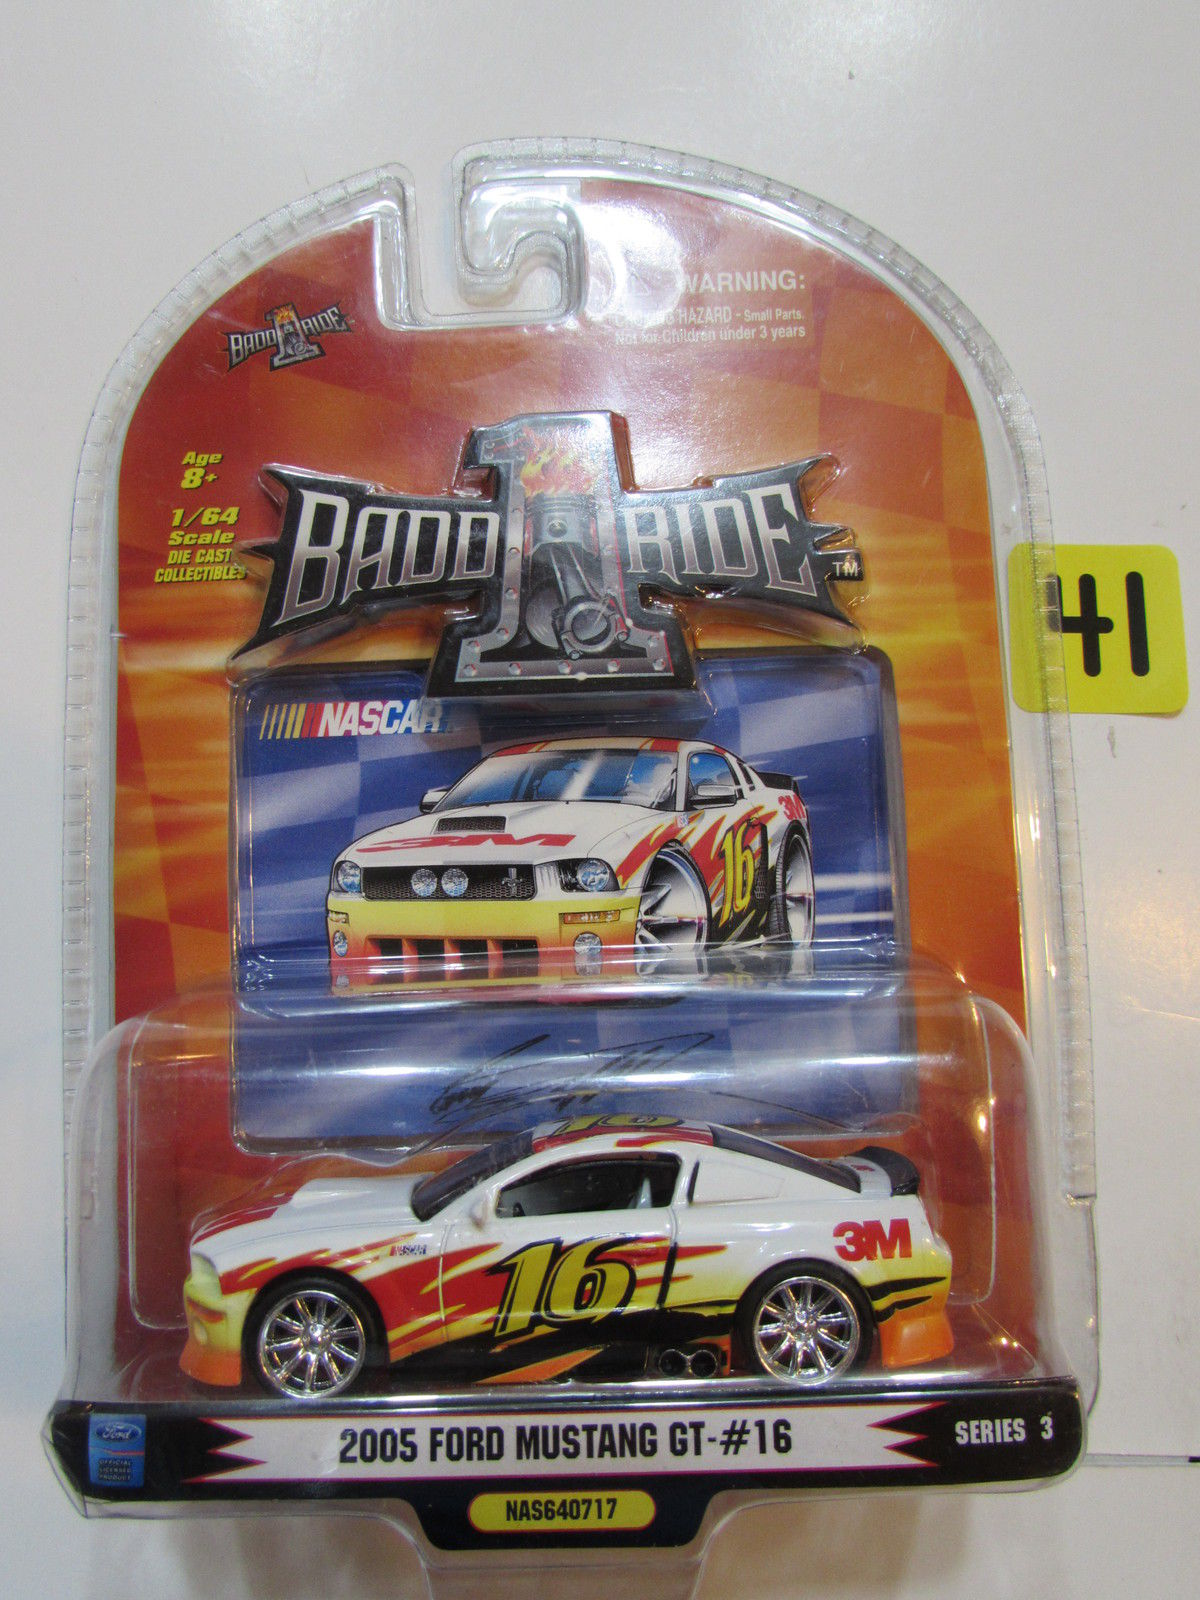 NASCAR 1 BADD RIDE 2005 FORD MUSTANG GT SERIES 3 SCALE 1:64